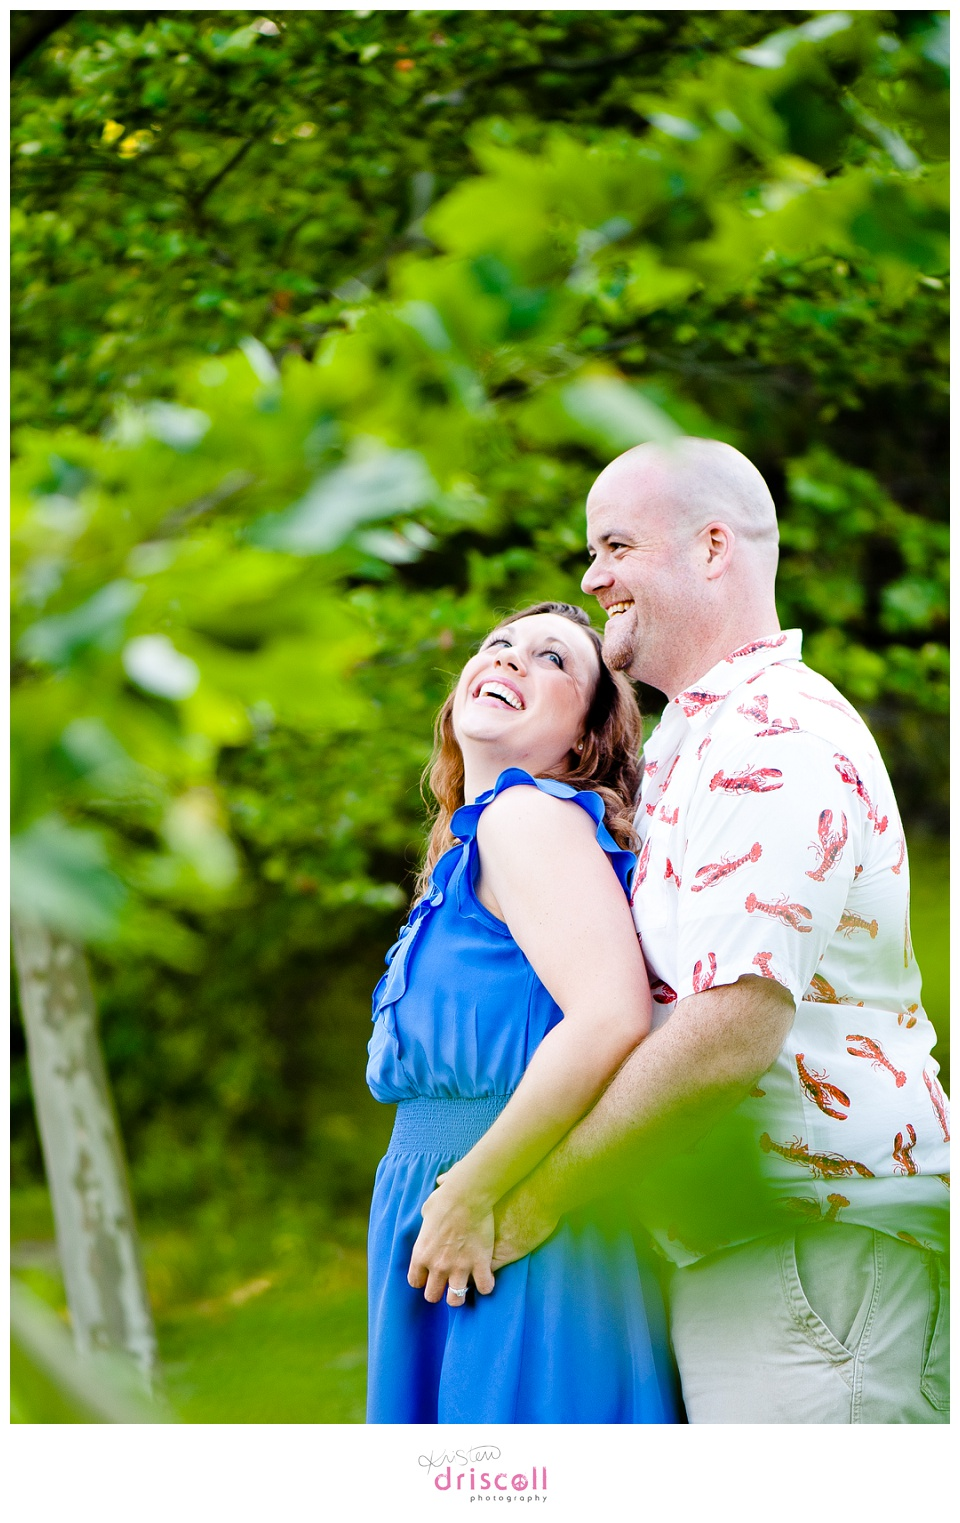 tinton-falls-engagement-photo-kristen-driscoll-20130605-3072